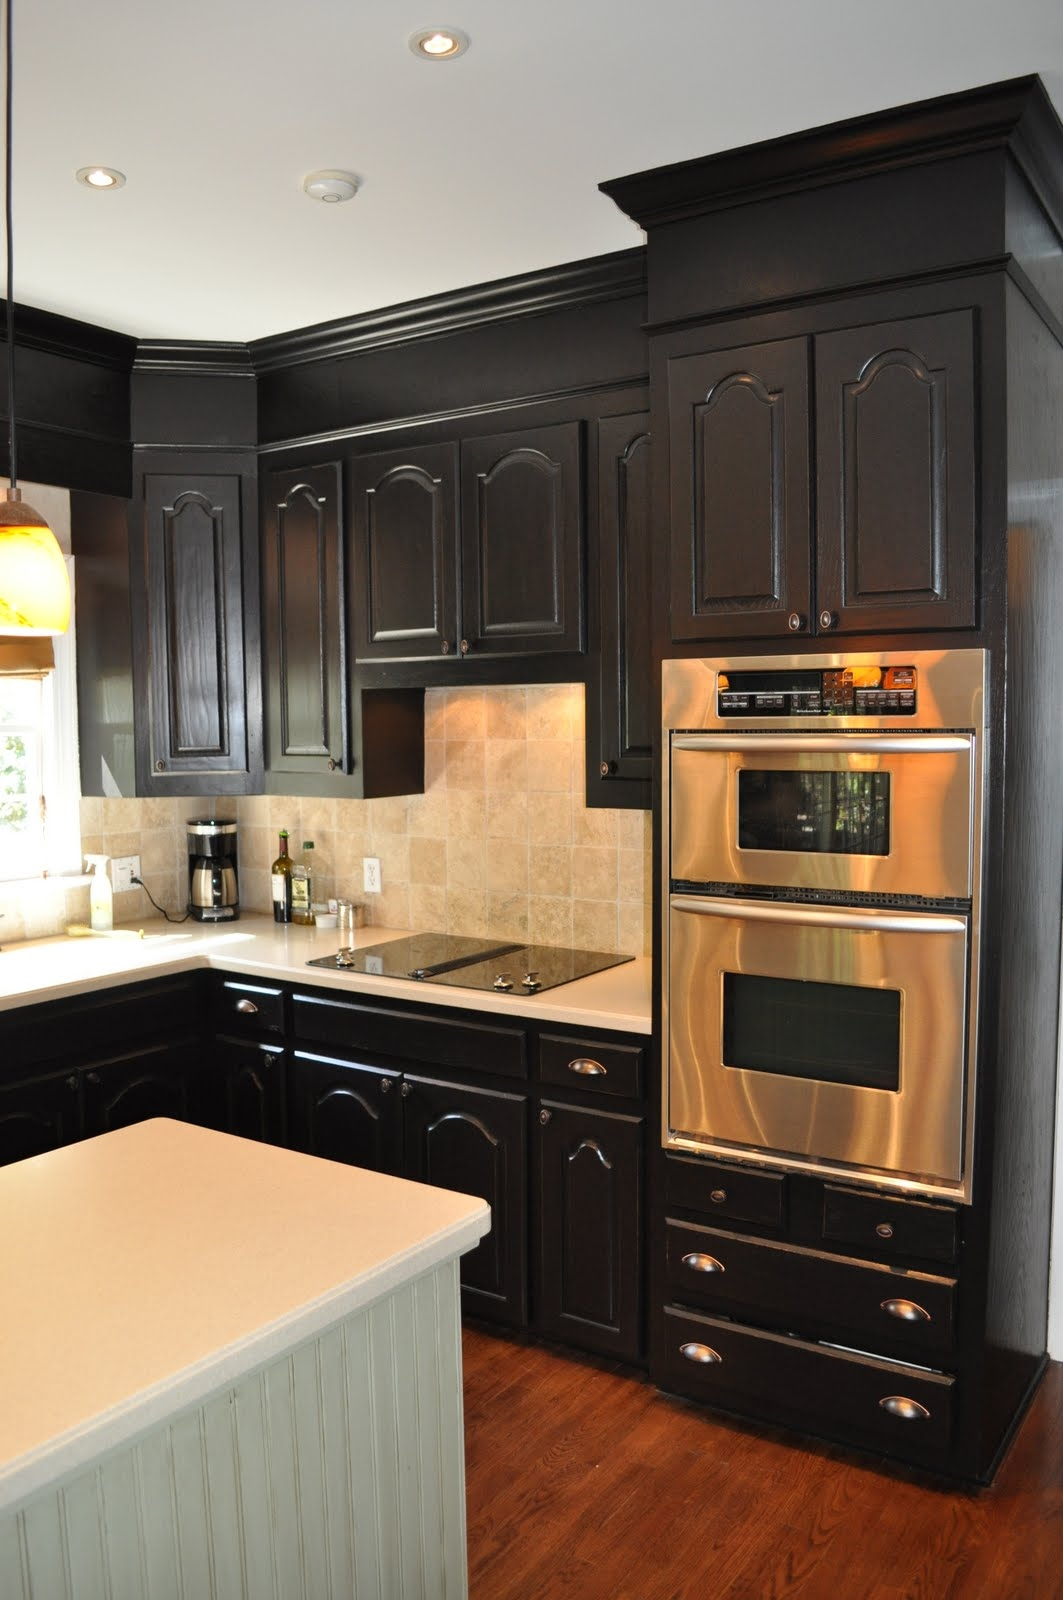 Spraying Kitchen Cabinets With Lacquer